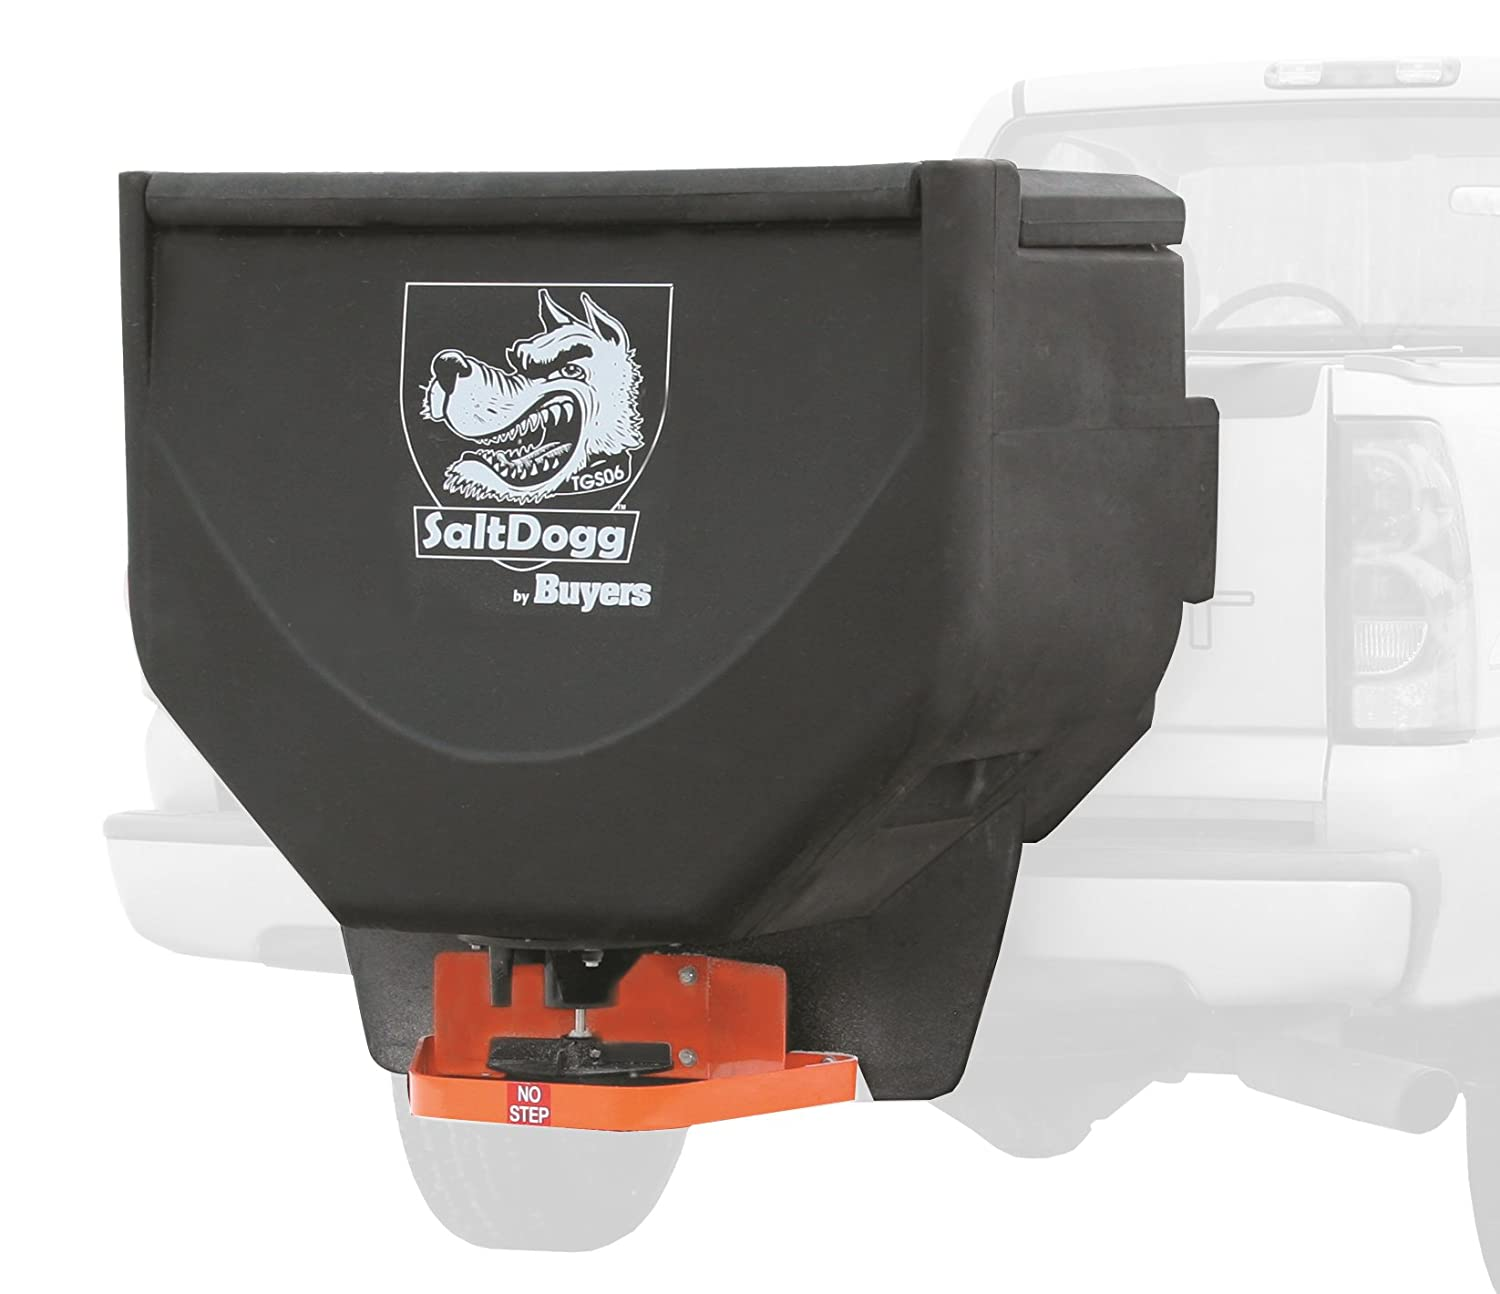 SaltDogg TGS06 10 Cubic Foot Tailgate Salt Spreader Buyers Products Co. - DROPSHIP